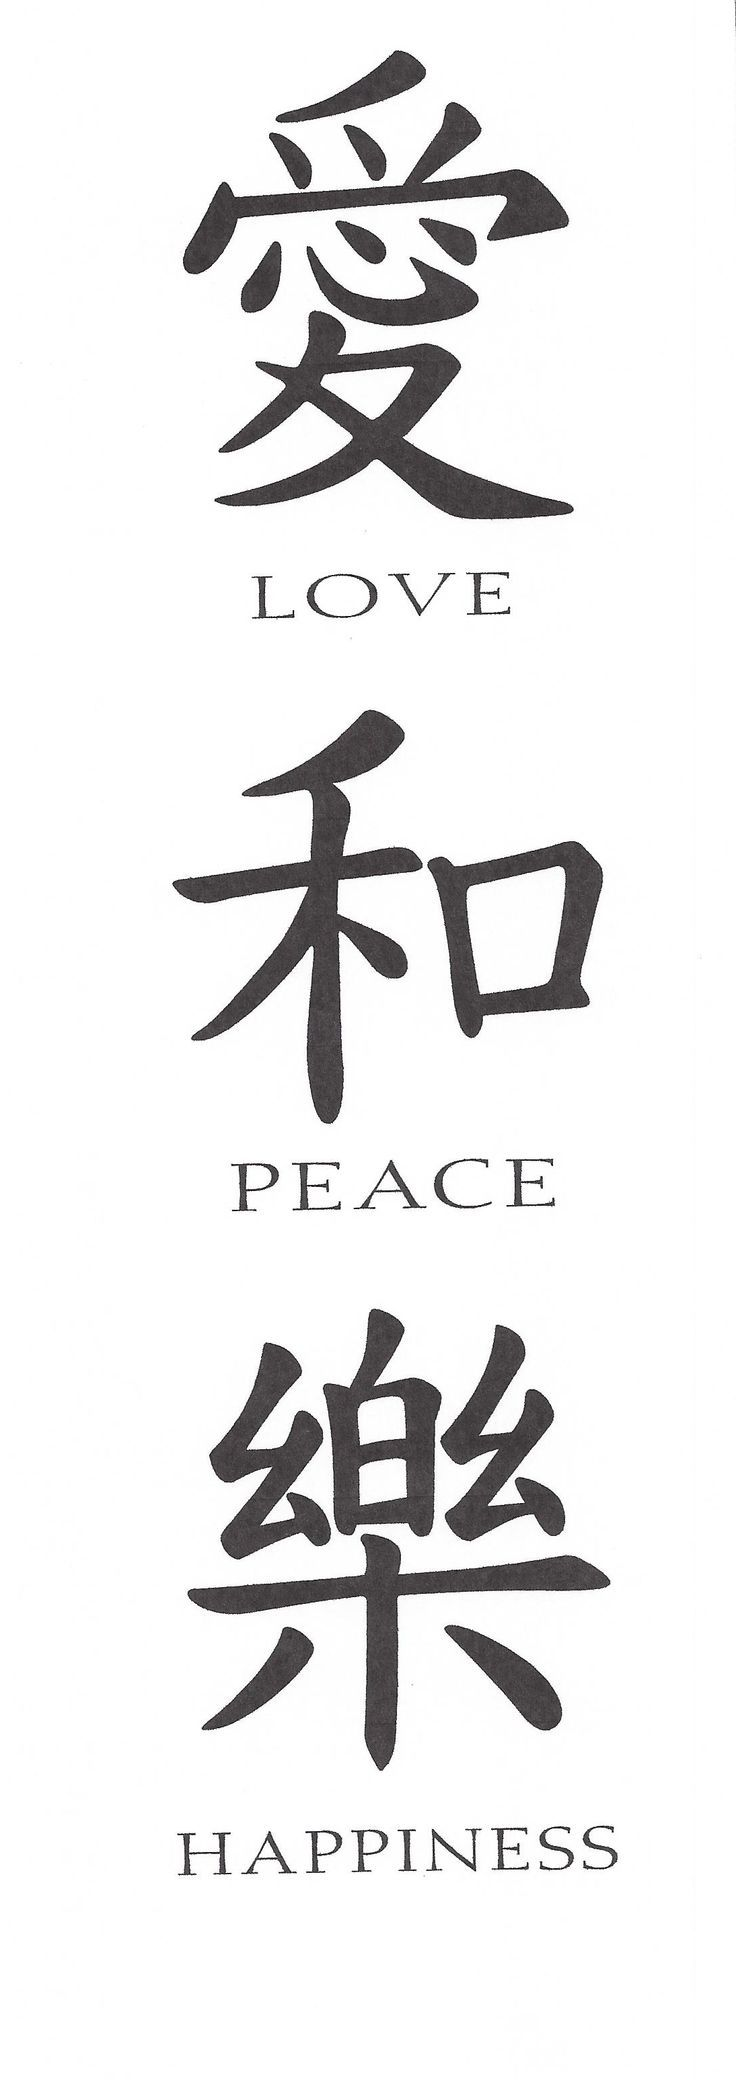 Love peace and happiness in japanese writing google search love peace and happiness in japanese writing google search happiness symbolsymbol for biocorpaavc